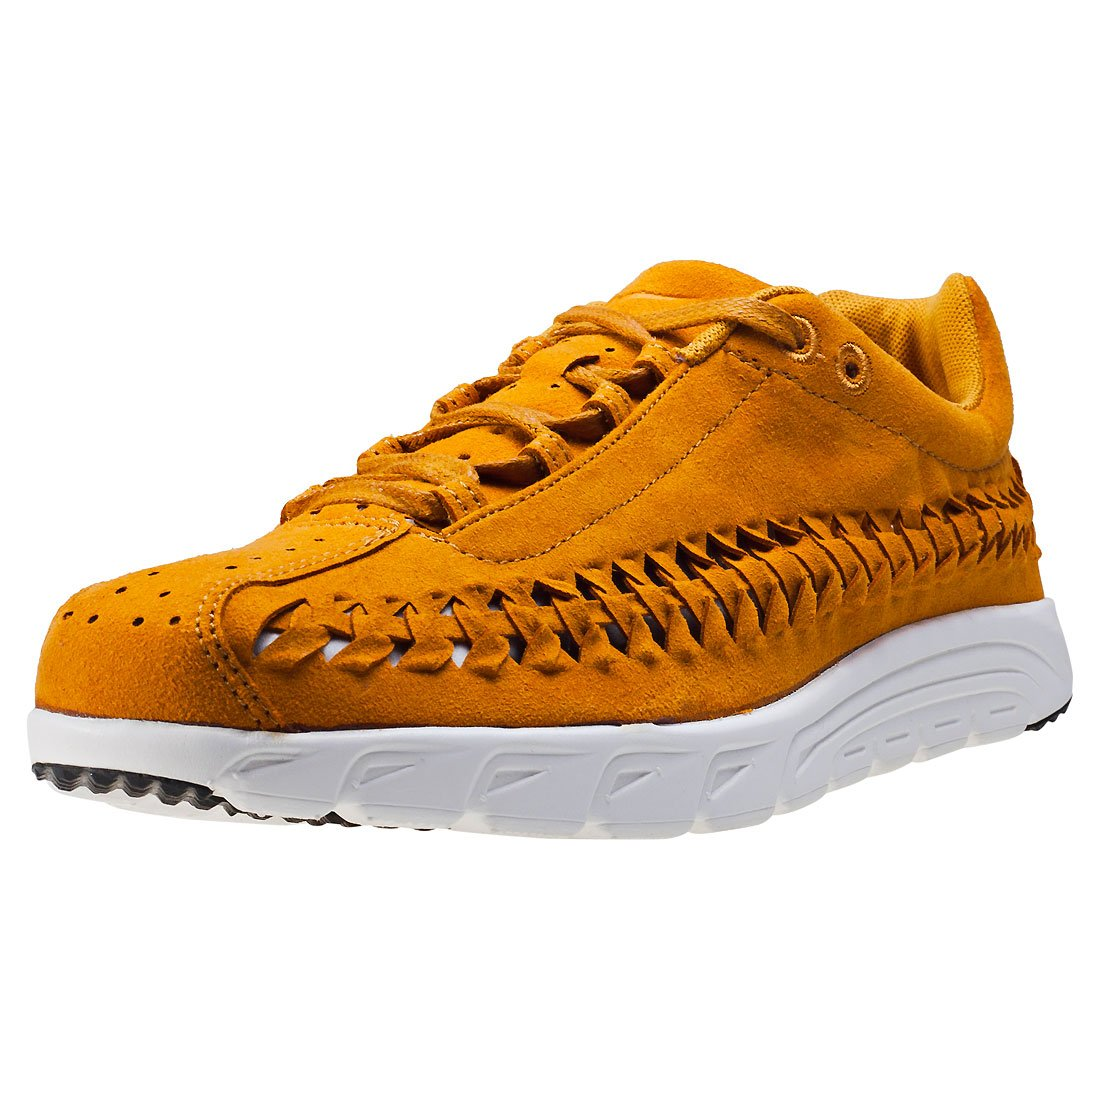 NIKE Men's Mayfly Woven Casual Shoe B01HI5MHI2 US 4|Bronze Black Summit White 700